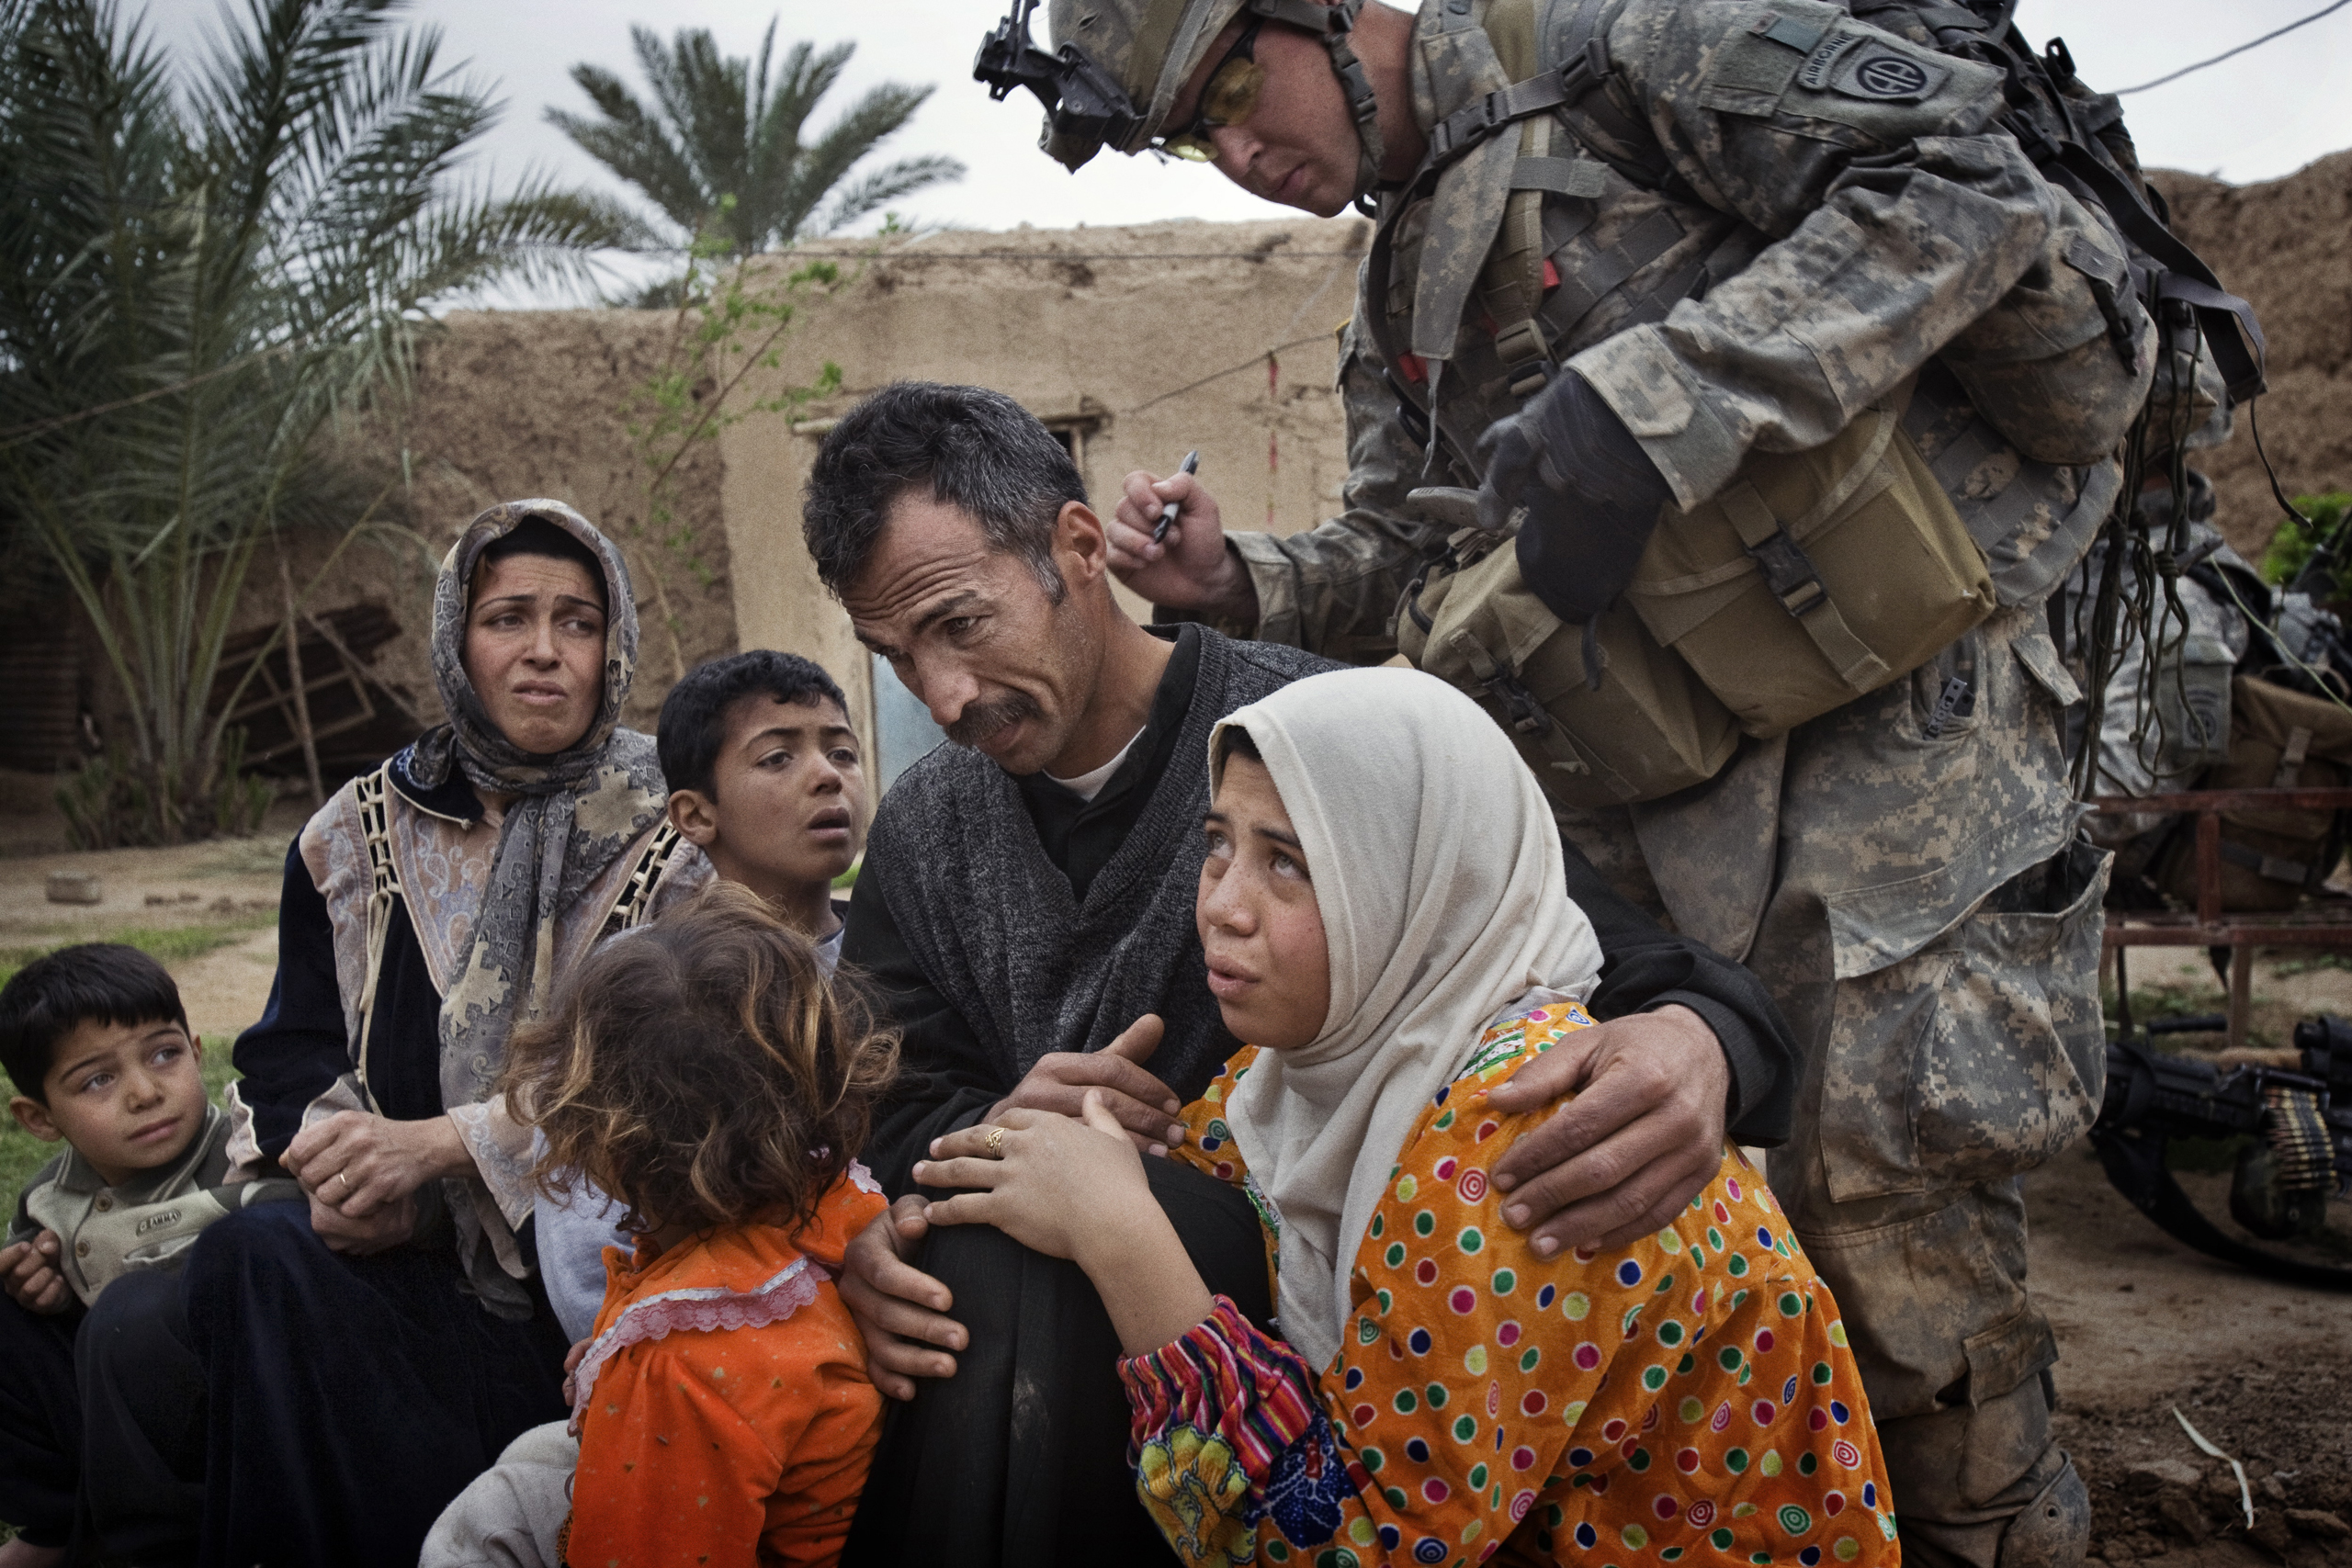 A  U.S. soldier marks the neck of a man with identifying numbers. The numbering system allowed U.S. troops to tell whether anyone was moving about the village, despite a lockdown, Qubah, Iraq, March 24, 2007.